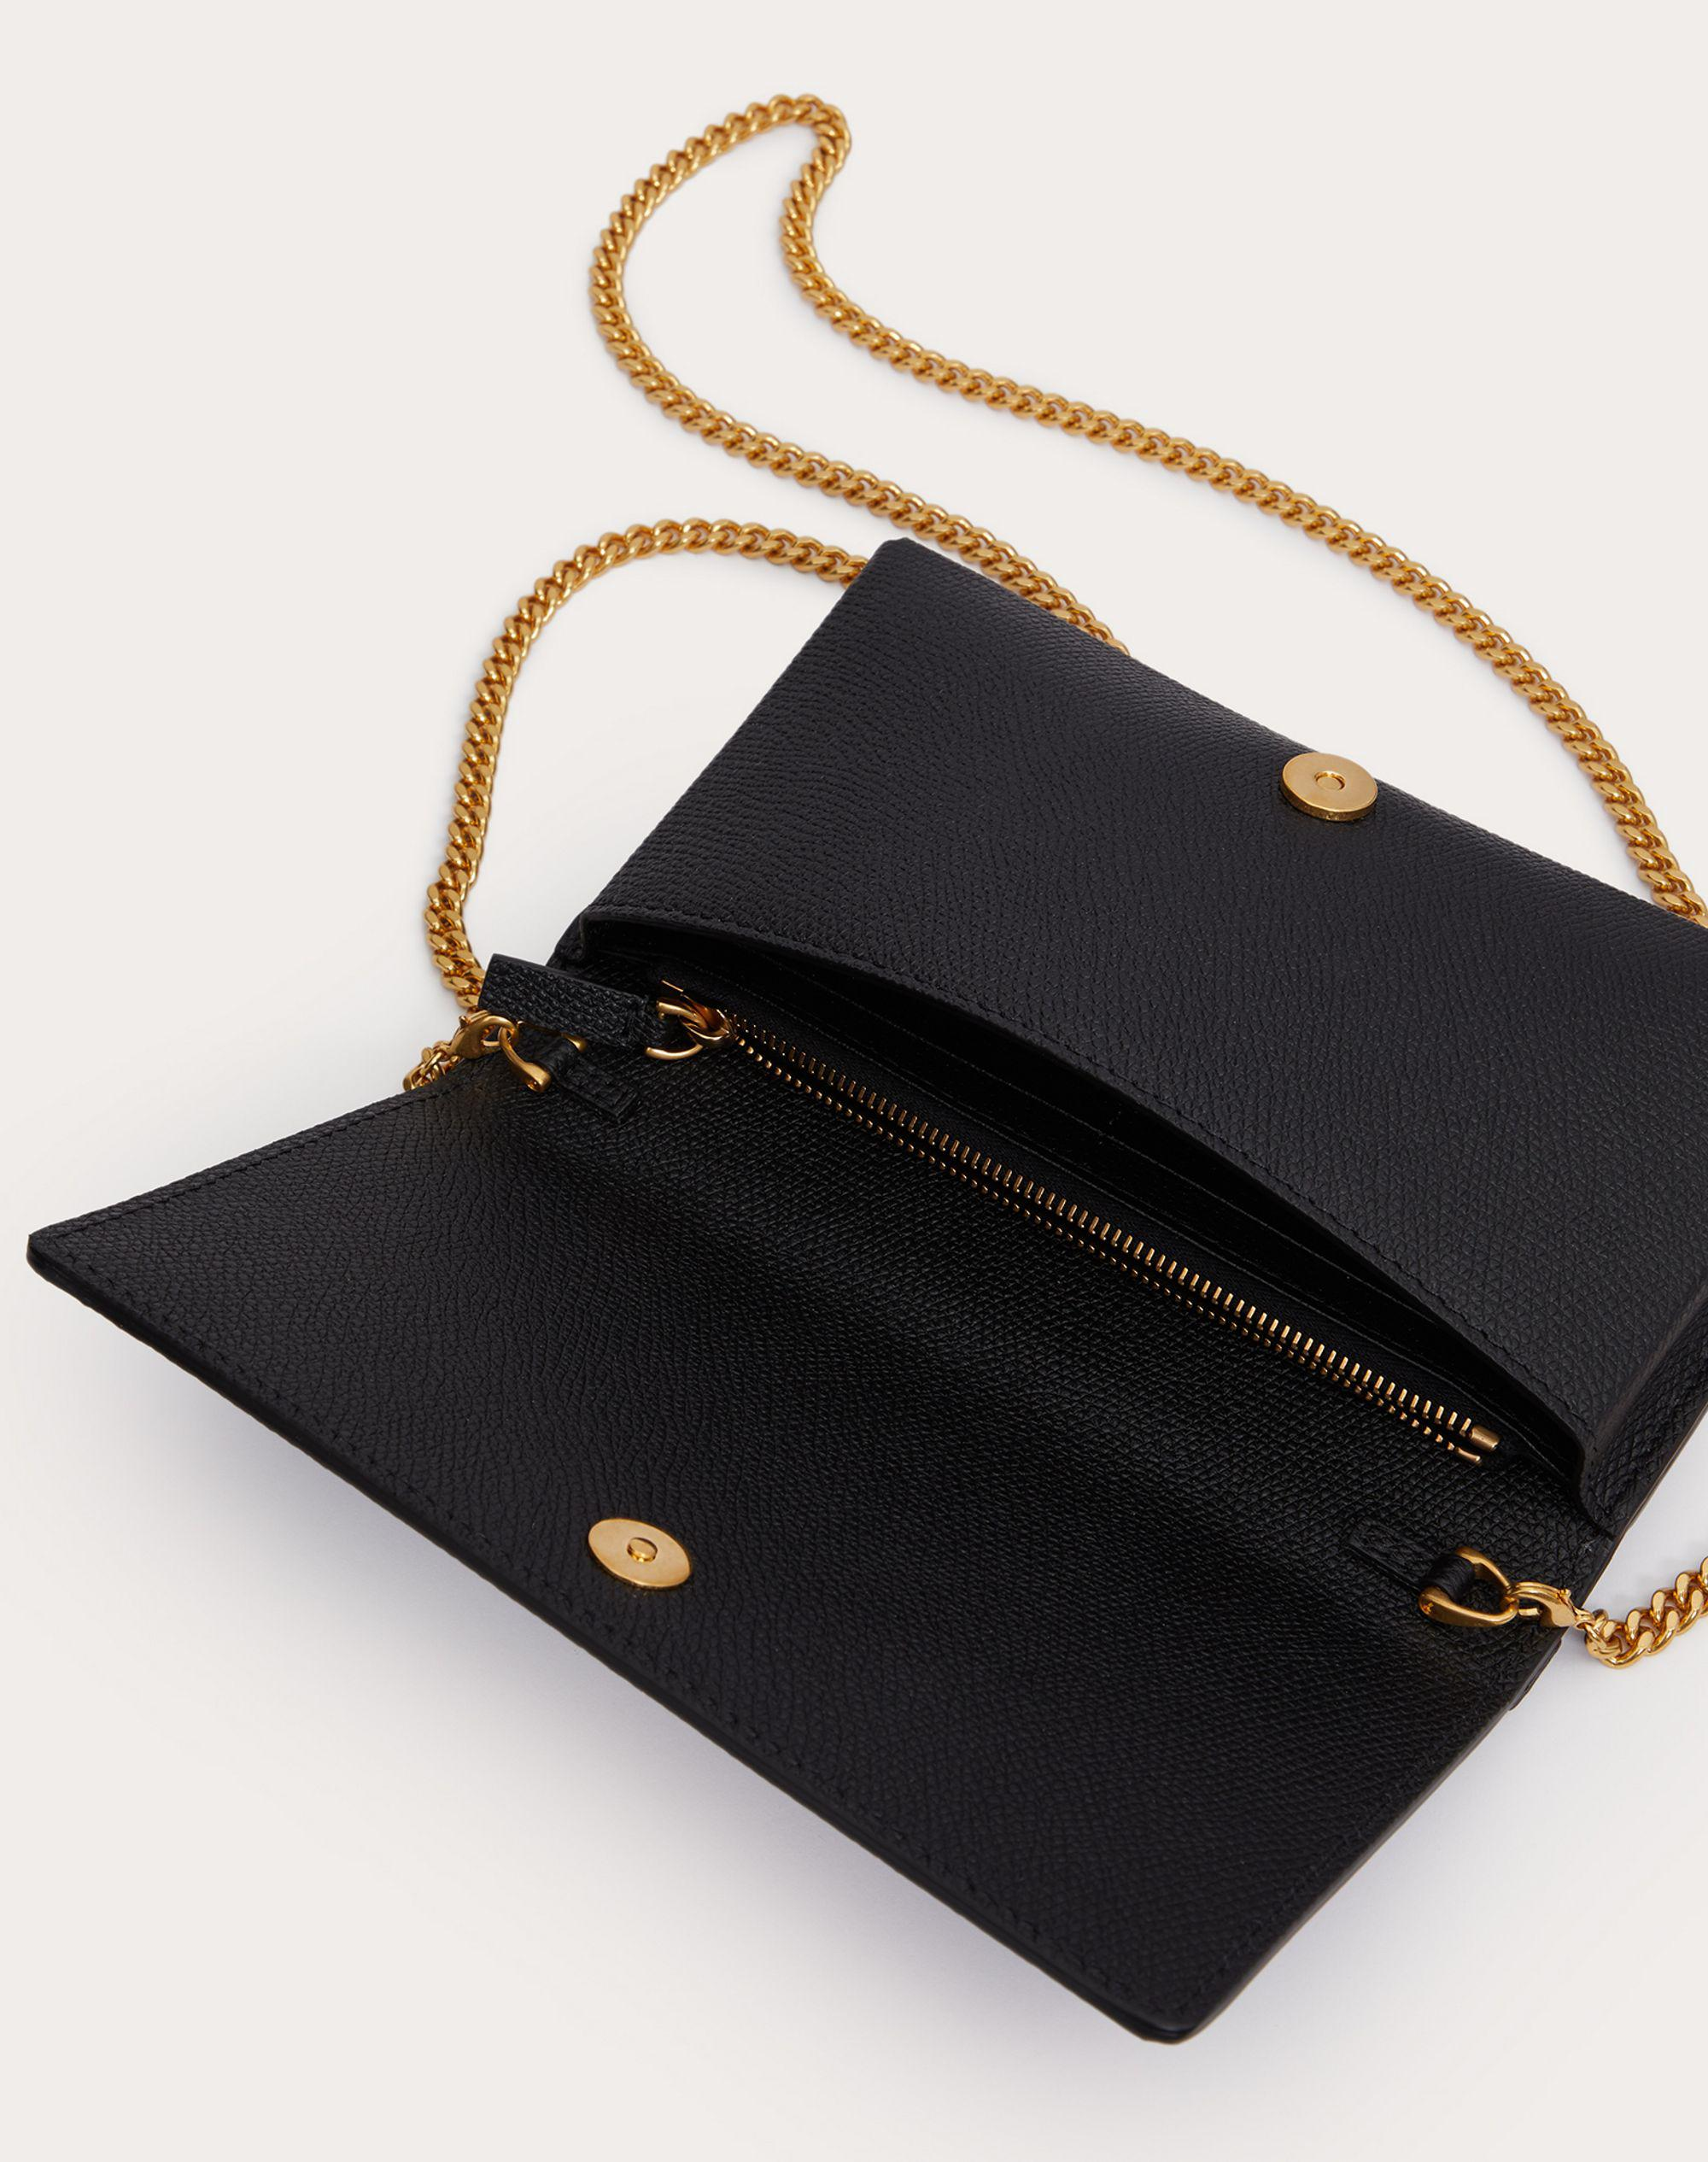 VLOGO SIGNATURE GRAINY CALFSKIN WALLET WITH CHAIN 4